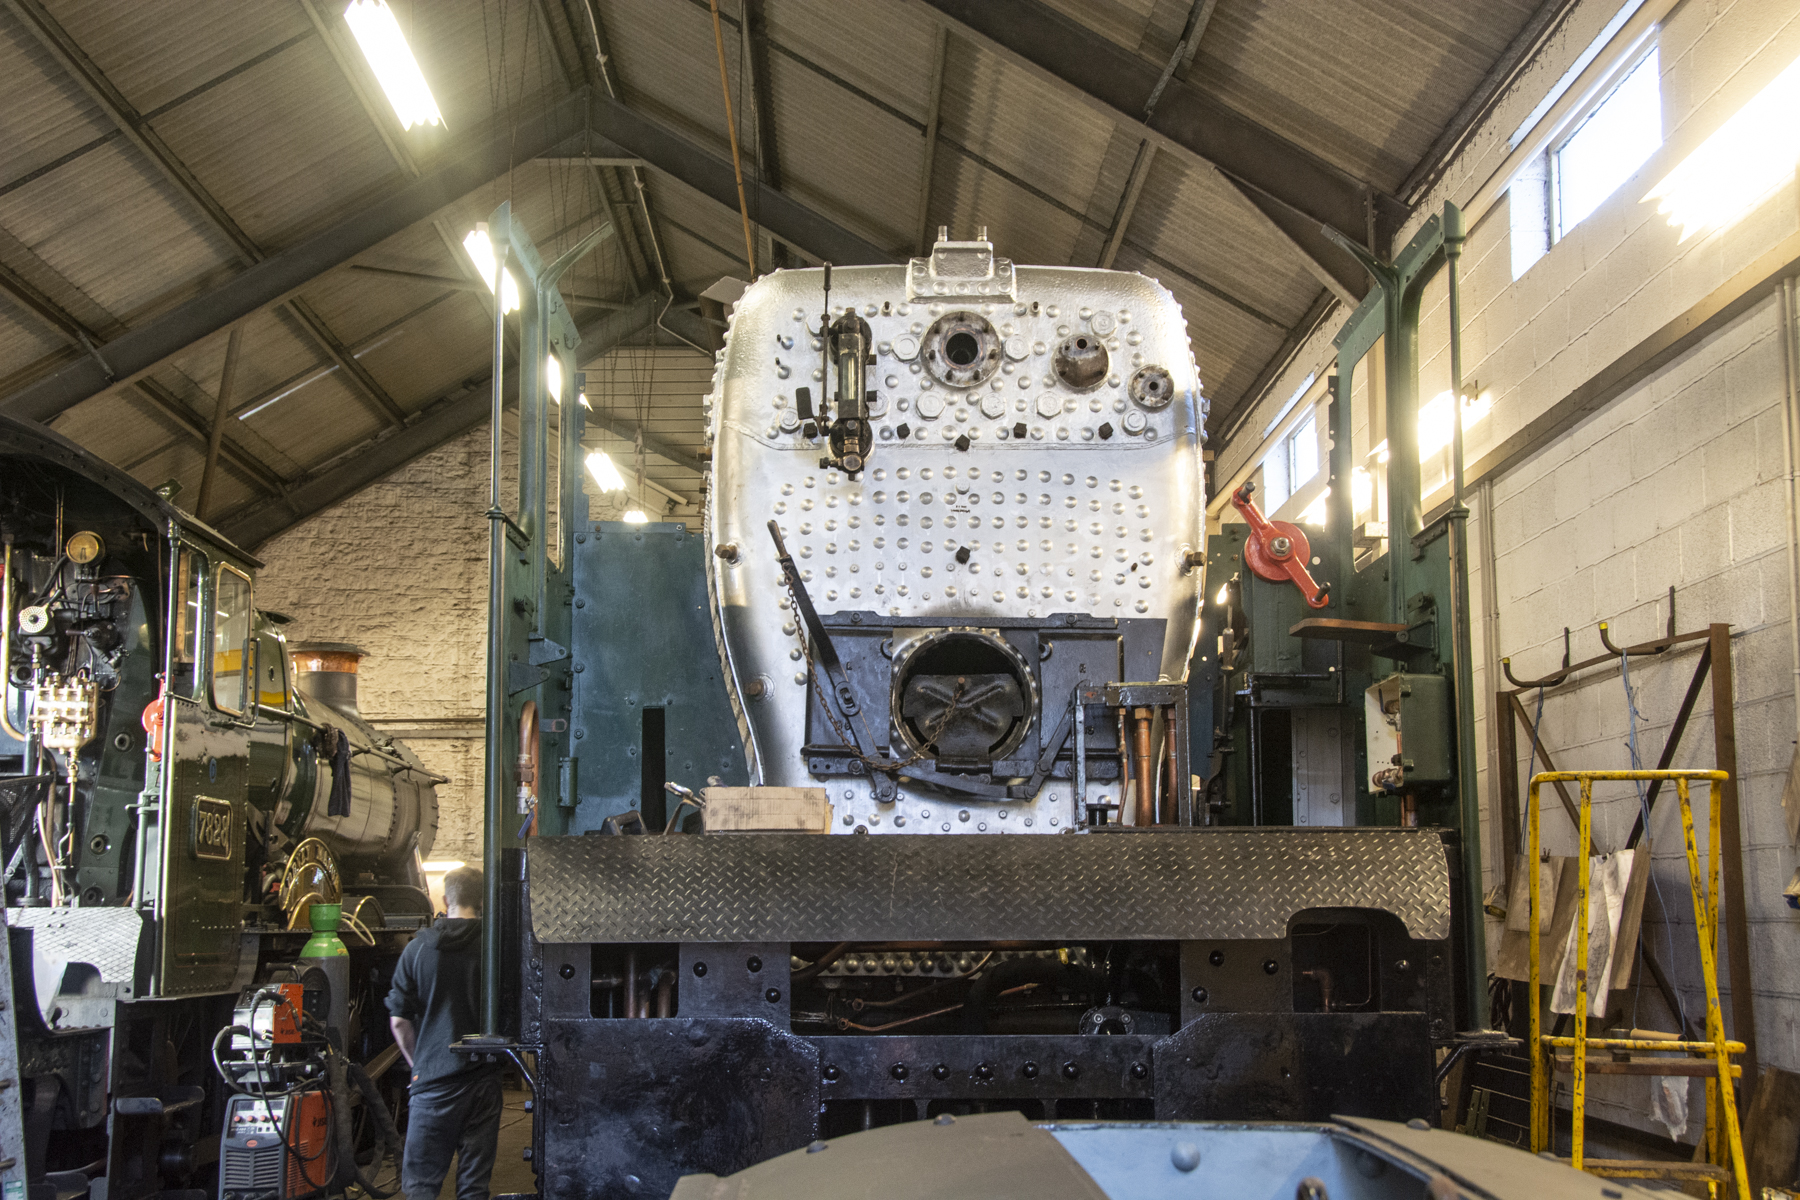 Shortly after the boiler had been refitted, plenty of work to do! 10 January 2020 © Martyn Bane